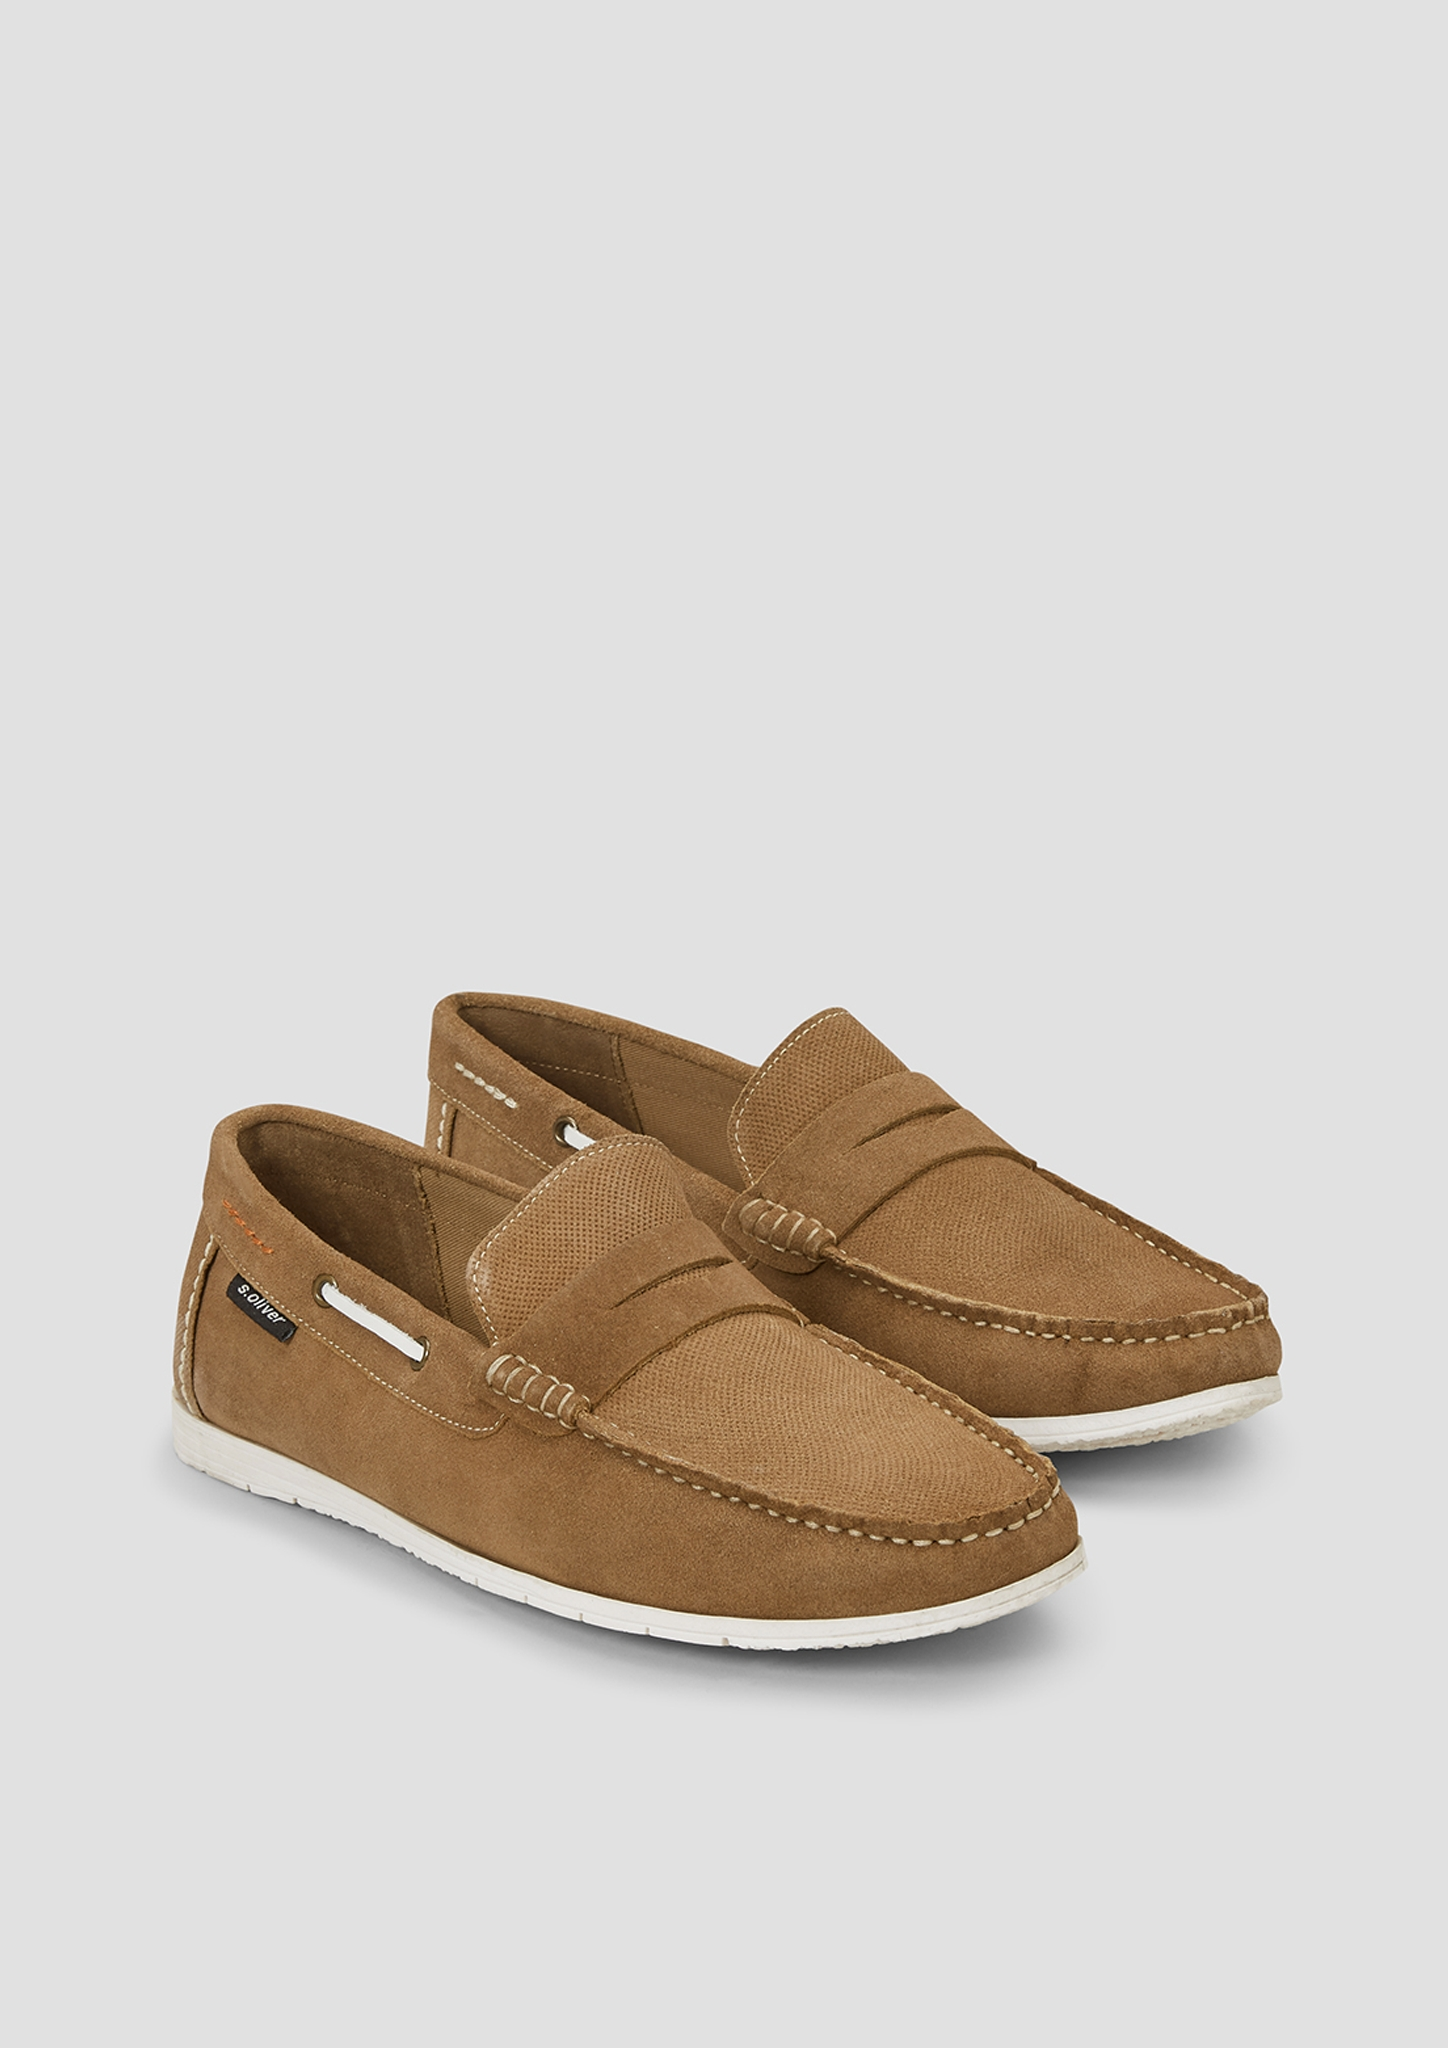 Leder-Slipper | Schuhe > Slipper | s.Oliver